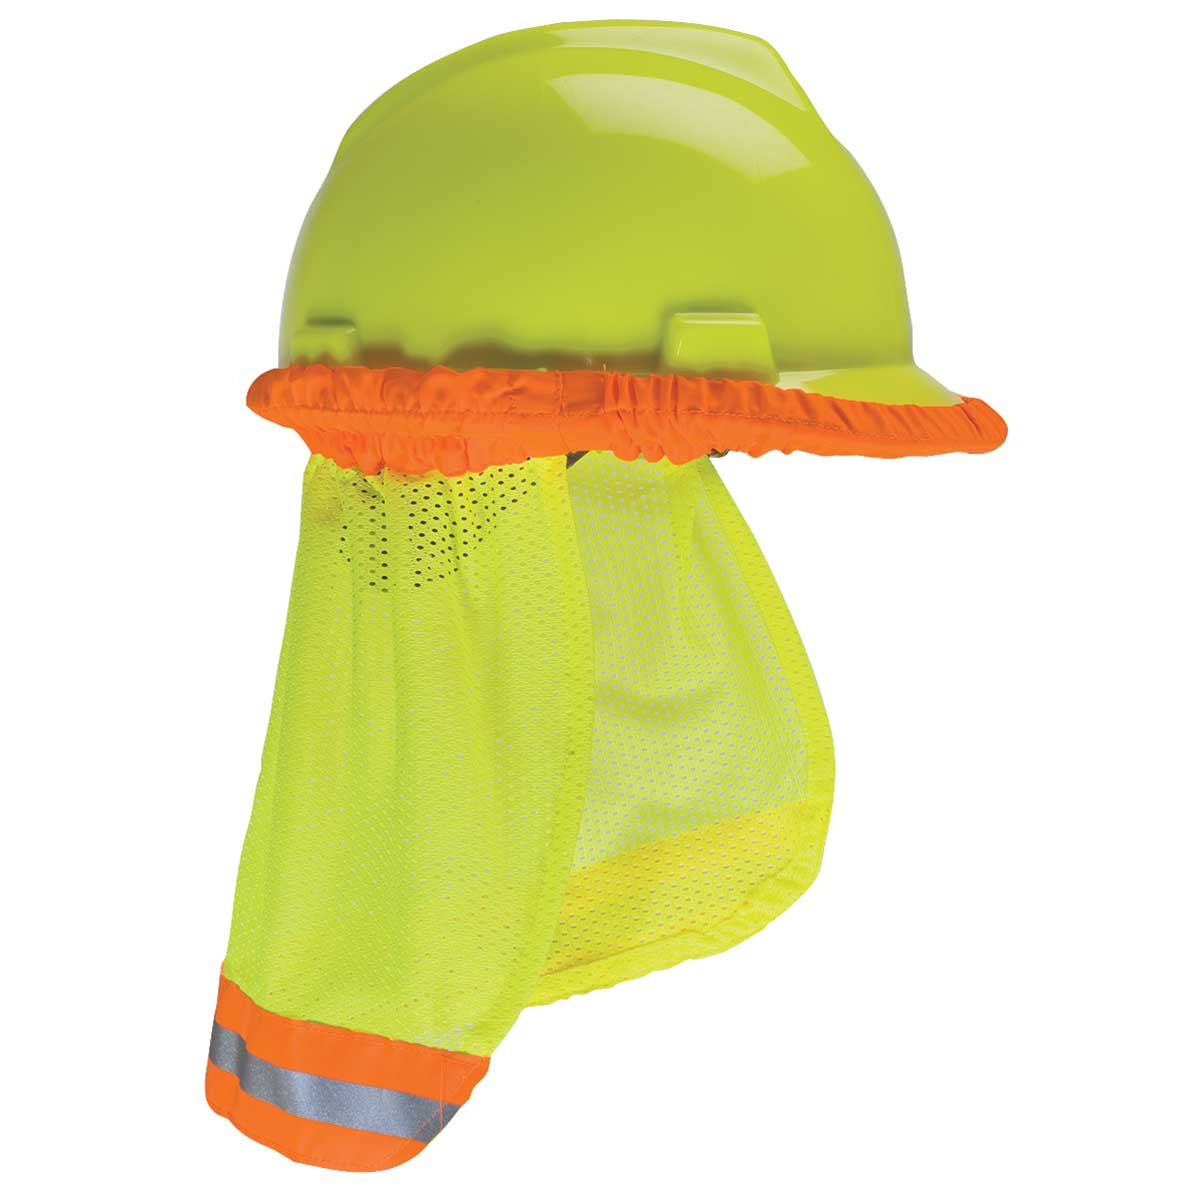 MSA Reflective Sun Shade Hard Hat Protector - Industrial Safety Products 07249d3623d